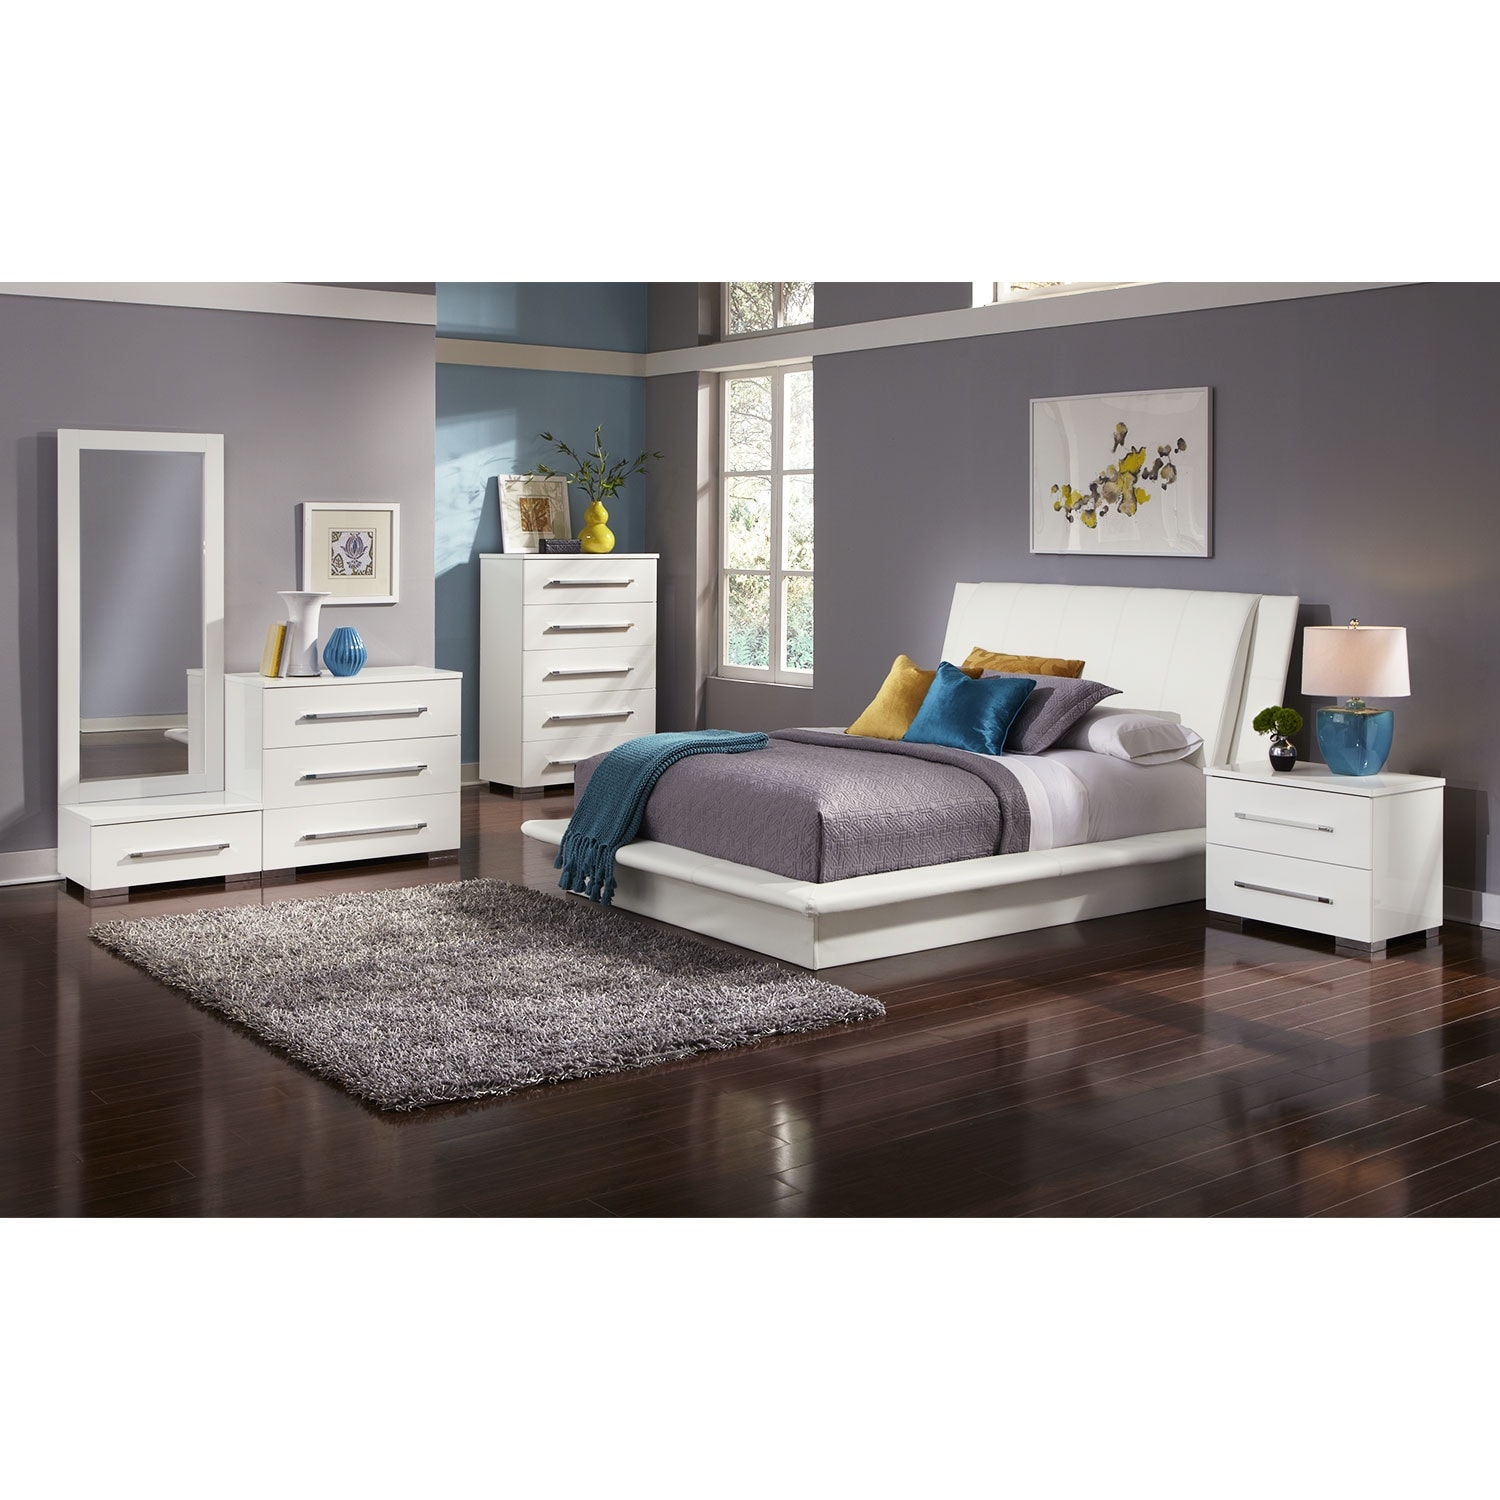 American signature furniture king bedroom sets